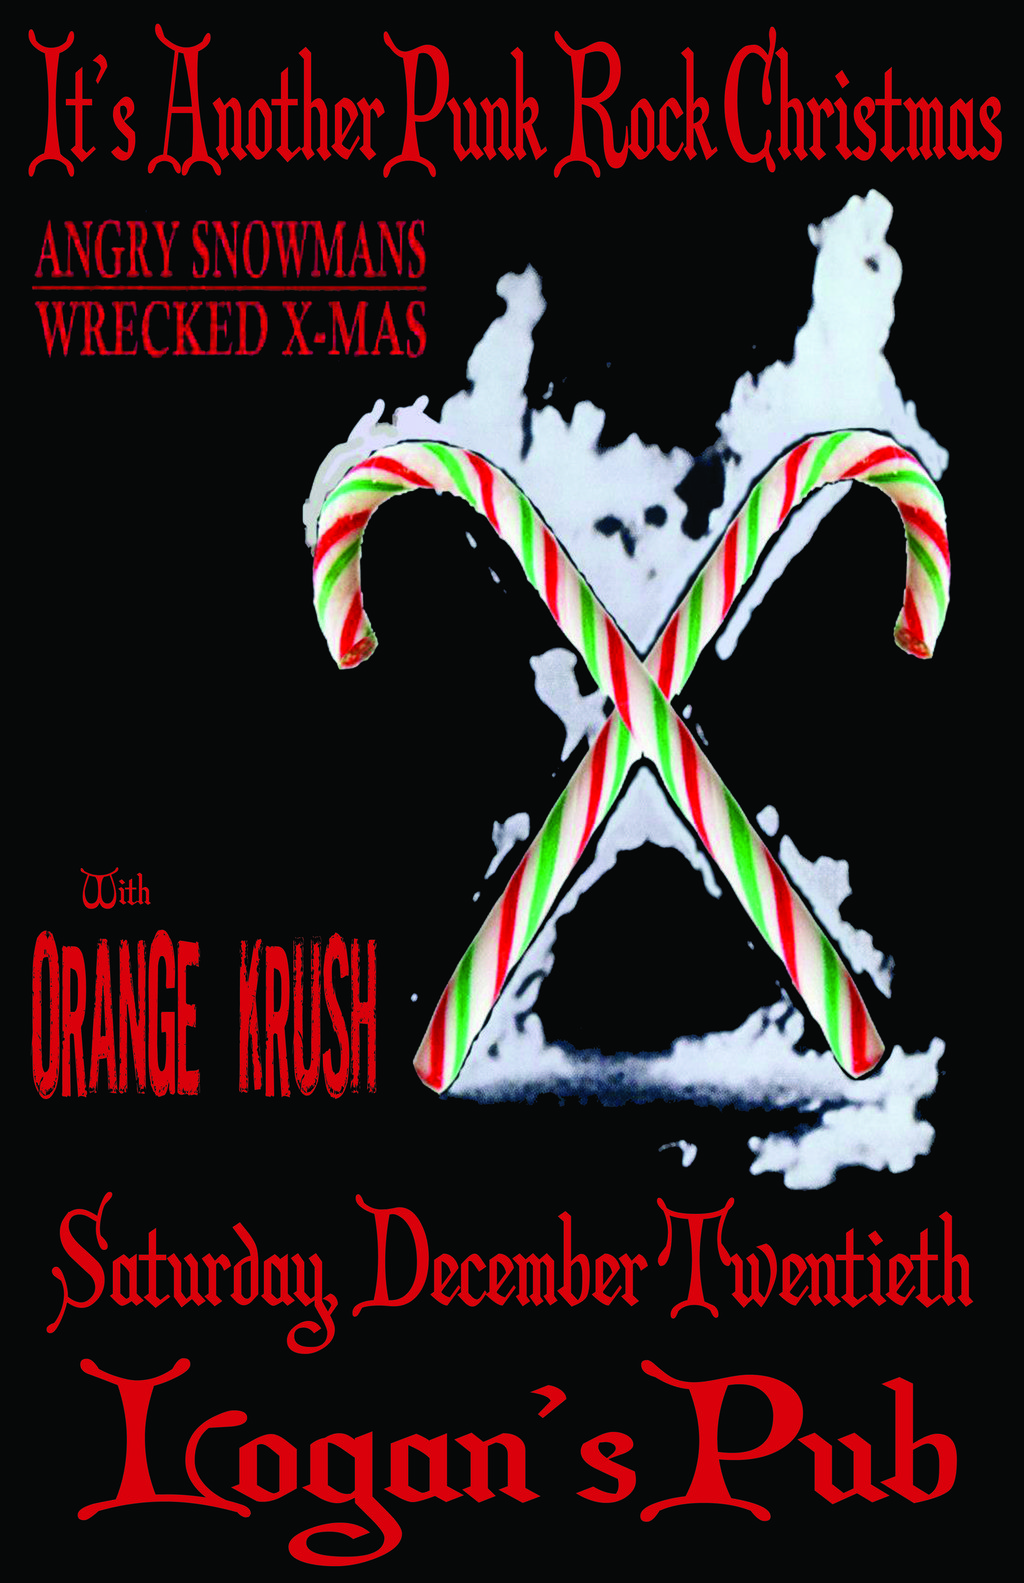 Another Punk Rock Christmas: Angry Snowmans, Orange Krush @ Logan's